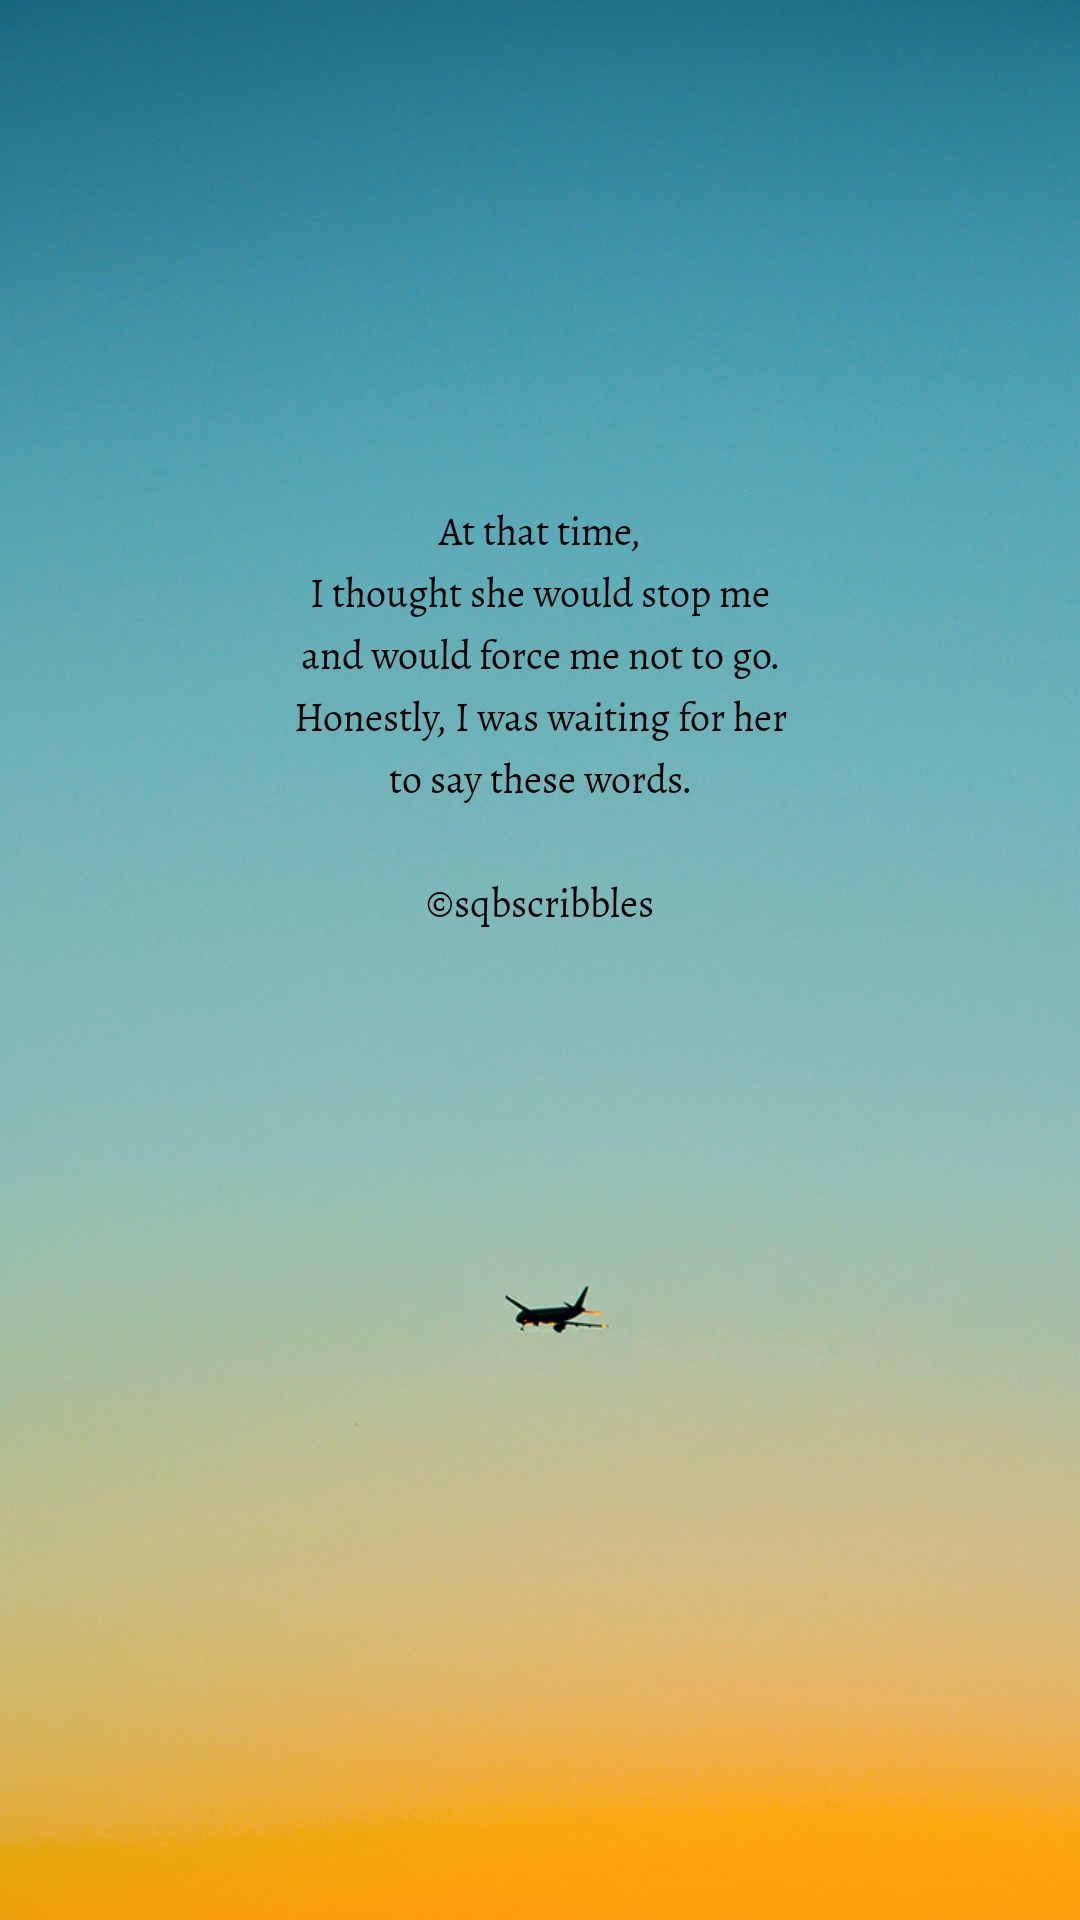 At that time, I thought she would stop me and would force me not to go. Honestly, I was waiting for her to say these words.  ©sqbscribbles